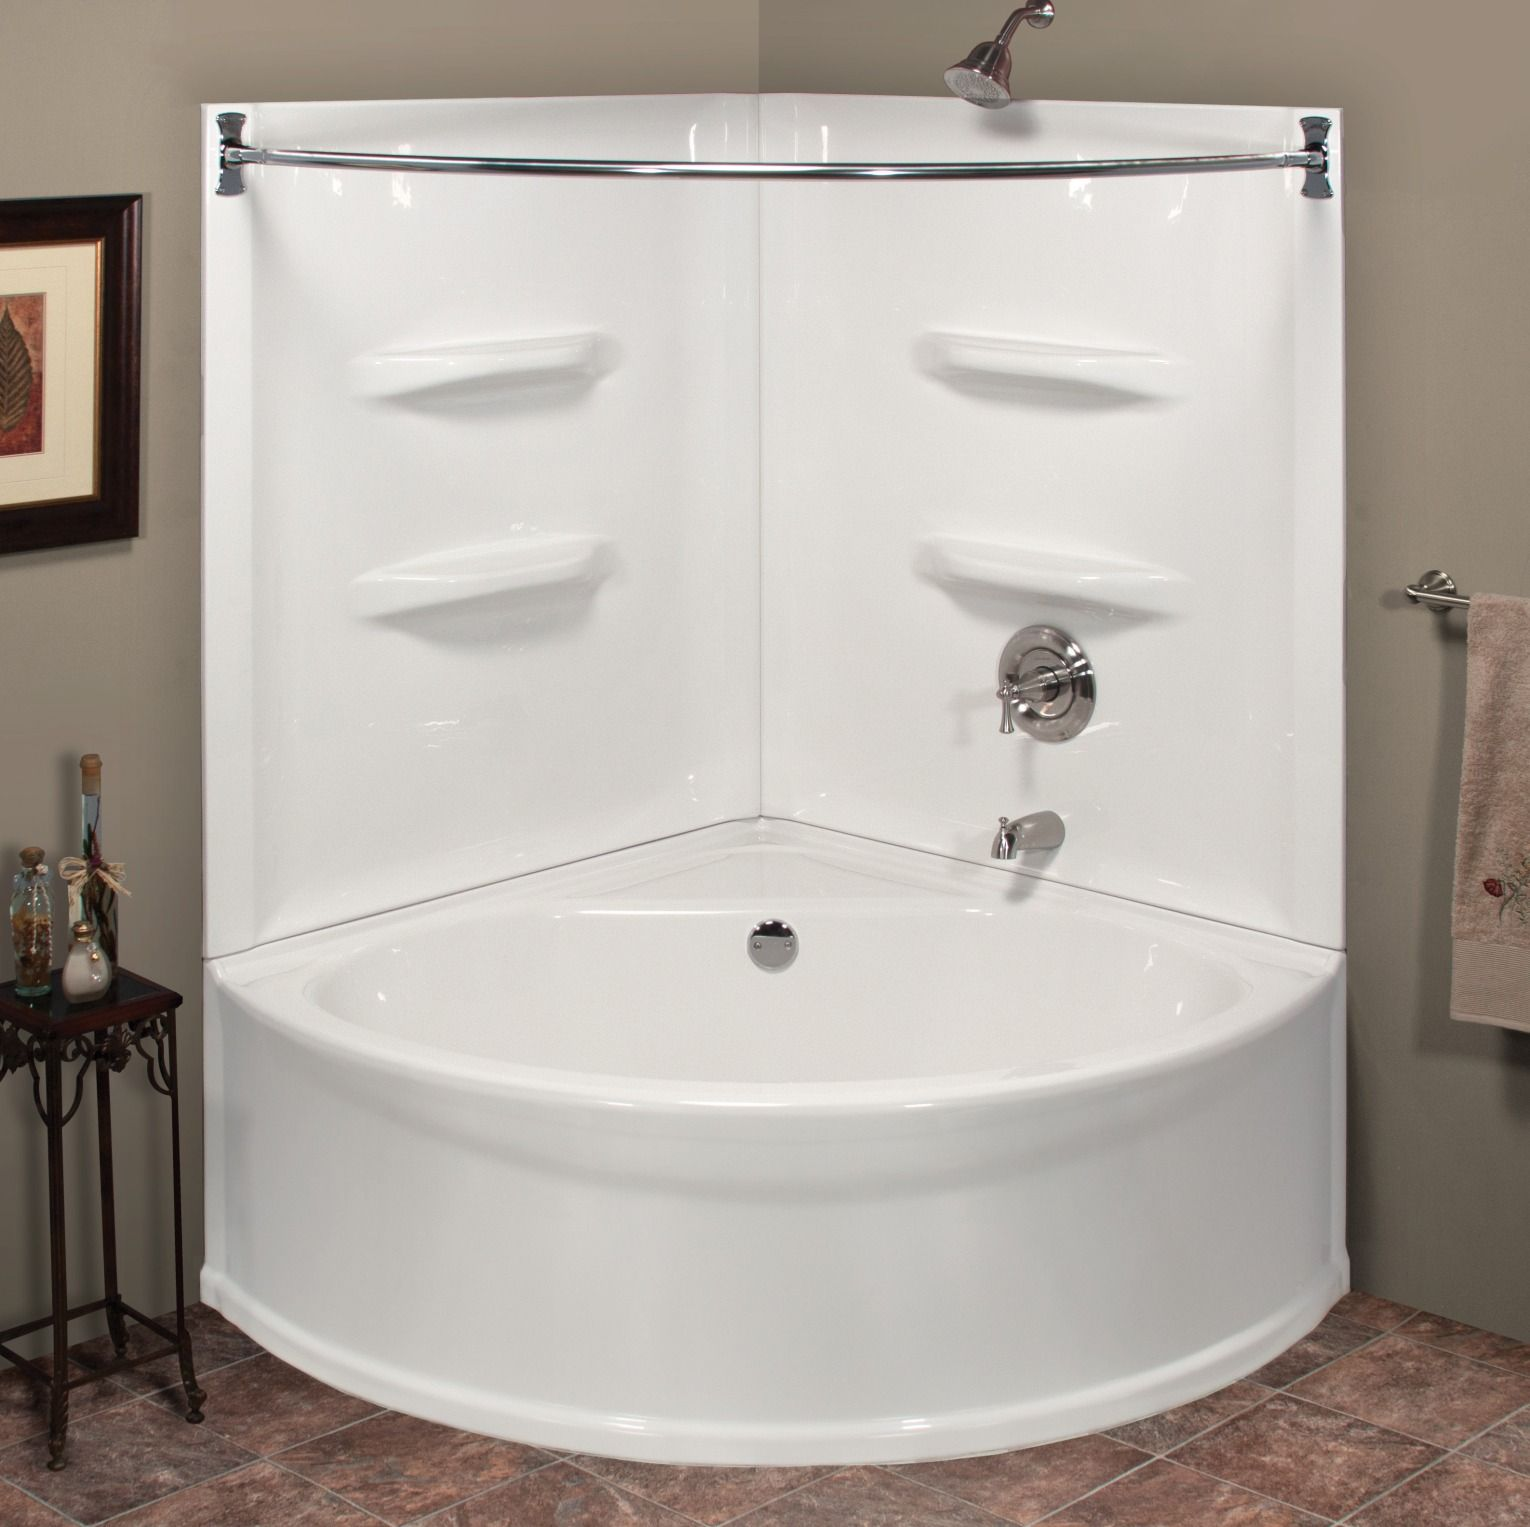 What A Beautiful Bathroom With The Sea Wave 48 X 48 X 73 Bathtub And Wall Kit You Can Create Your Own Tub Shower Combo Shower Tub Corner Bathtub Shower